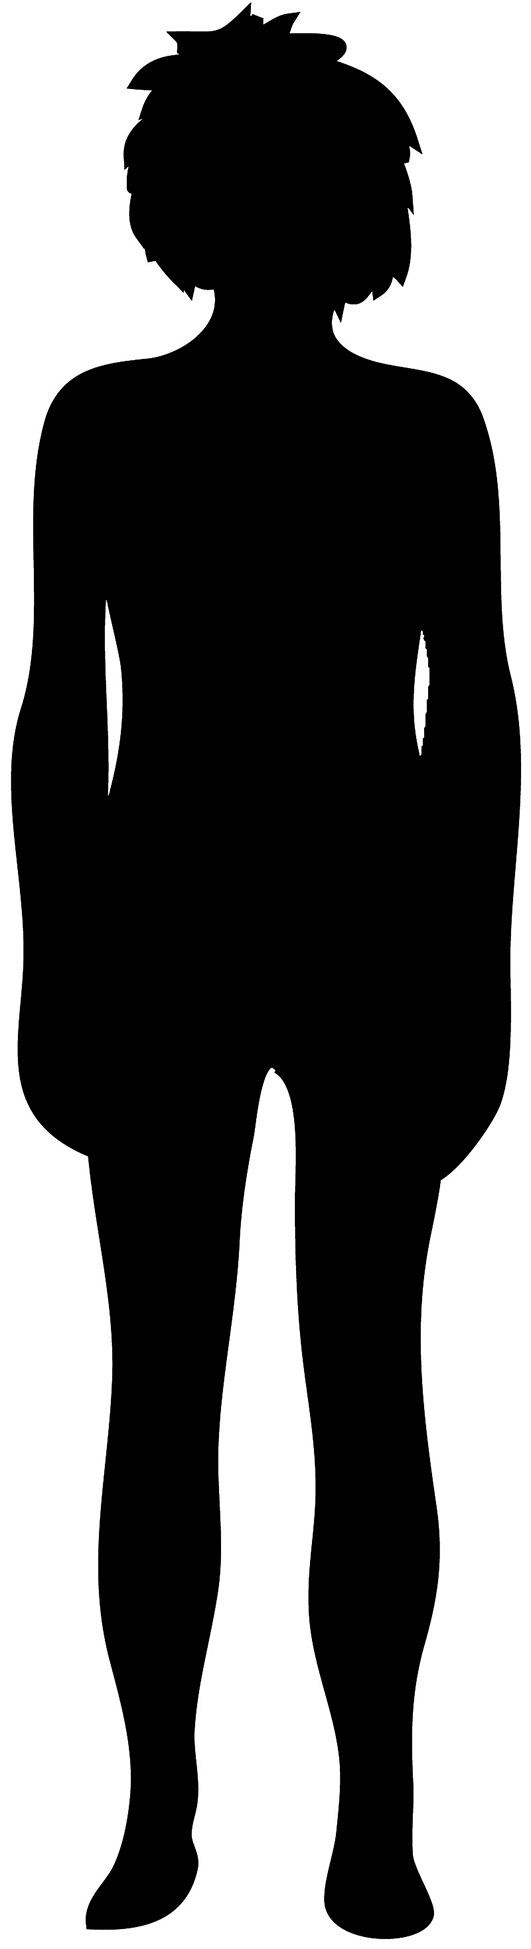 Black female silhouette with short hair